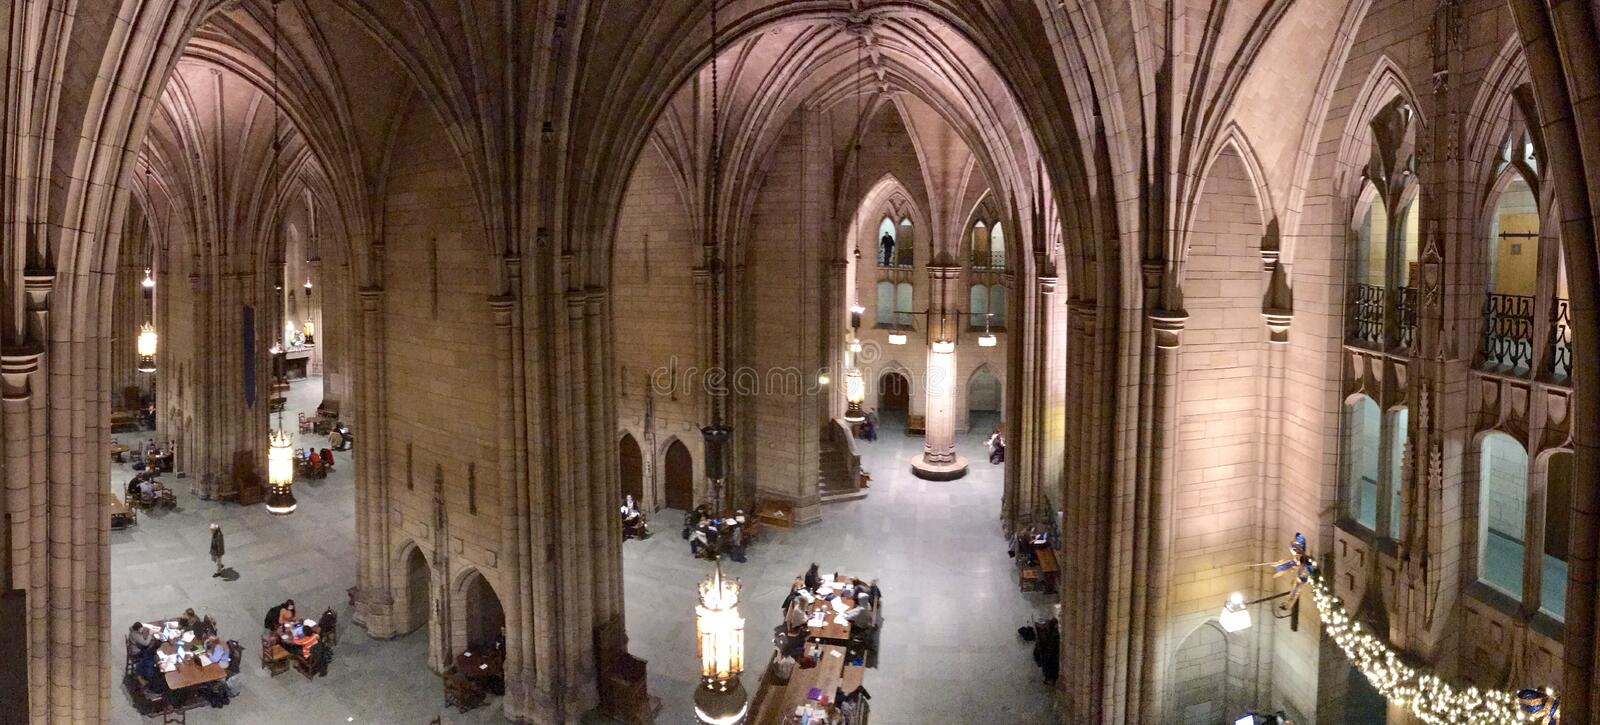 Cathedral of Learning, PITTSBURGH, PENNYSLVANIA, USA stock photos